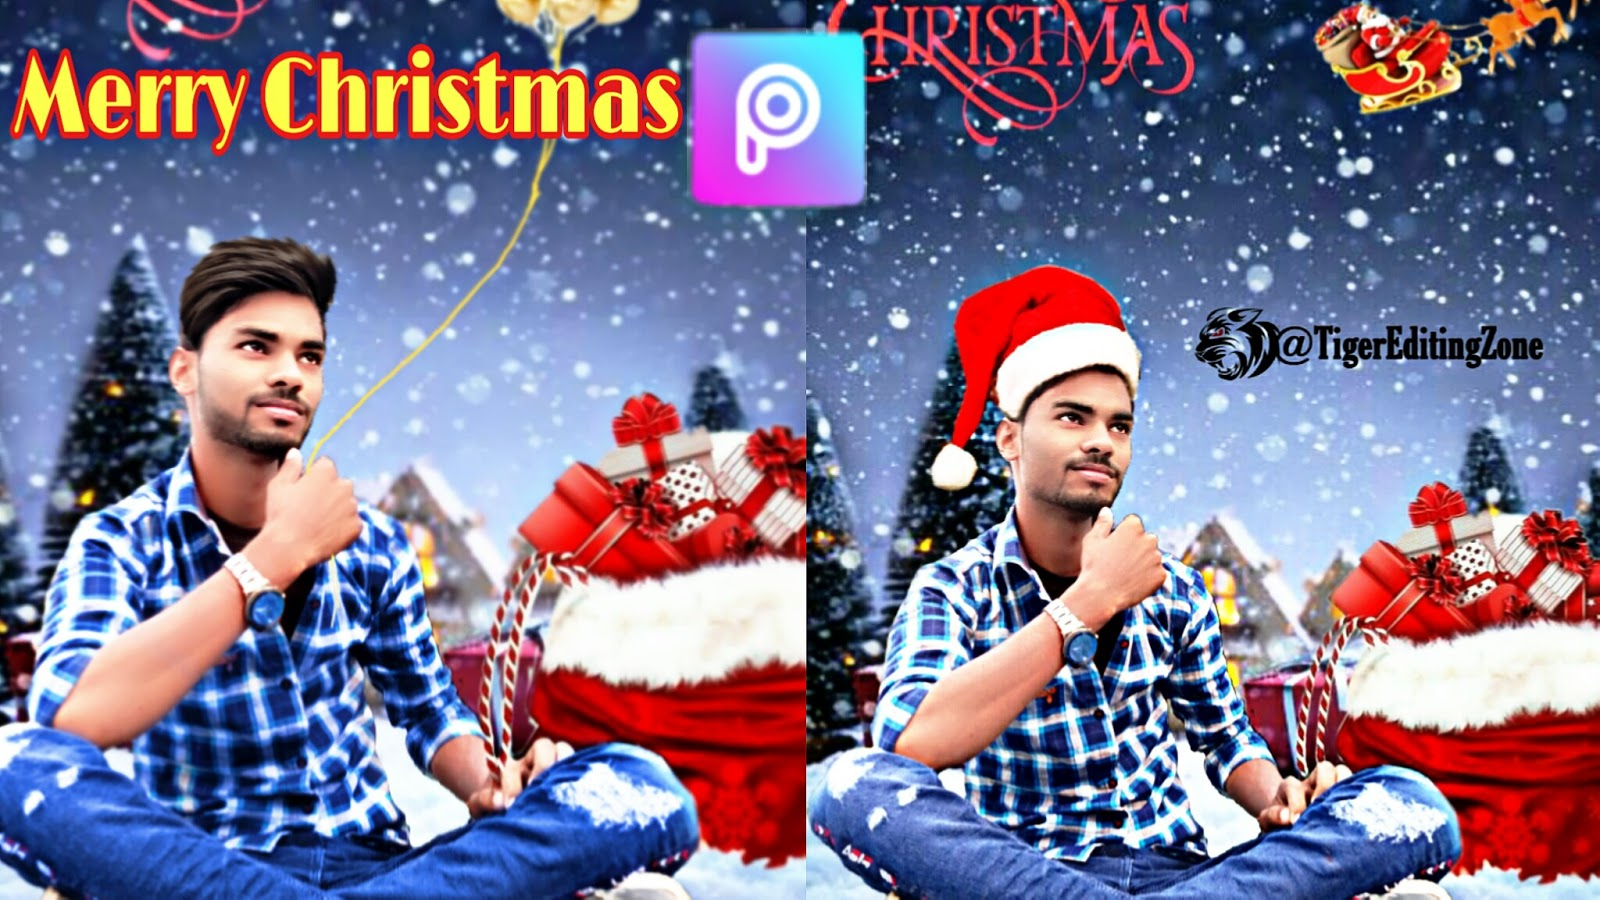 Picsart Merry Christmas Photo editing Tutorial 2020 || Happy Christmas Day Editing By Tiger Editing Zone